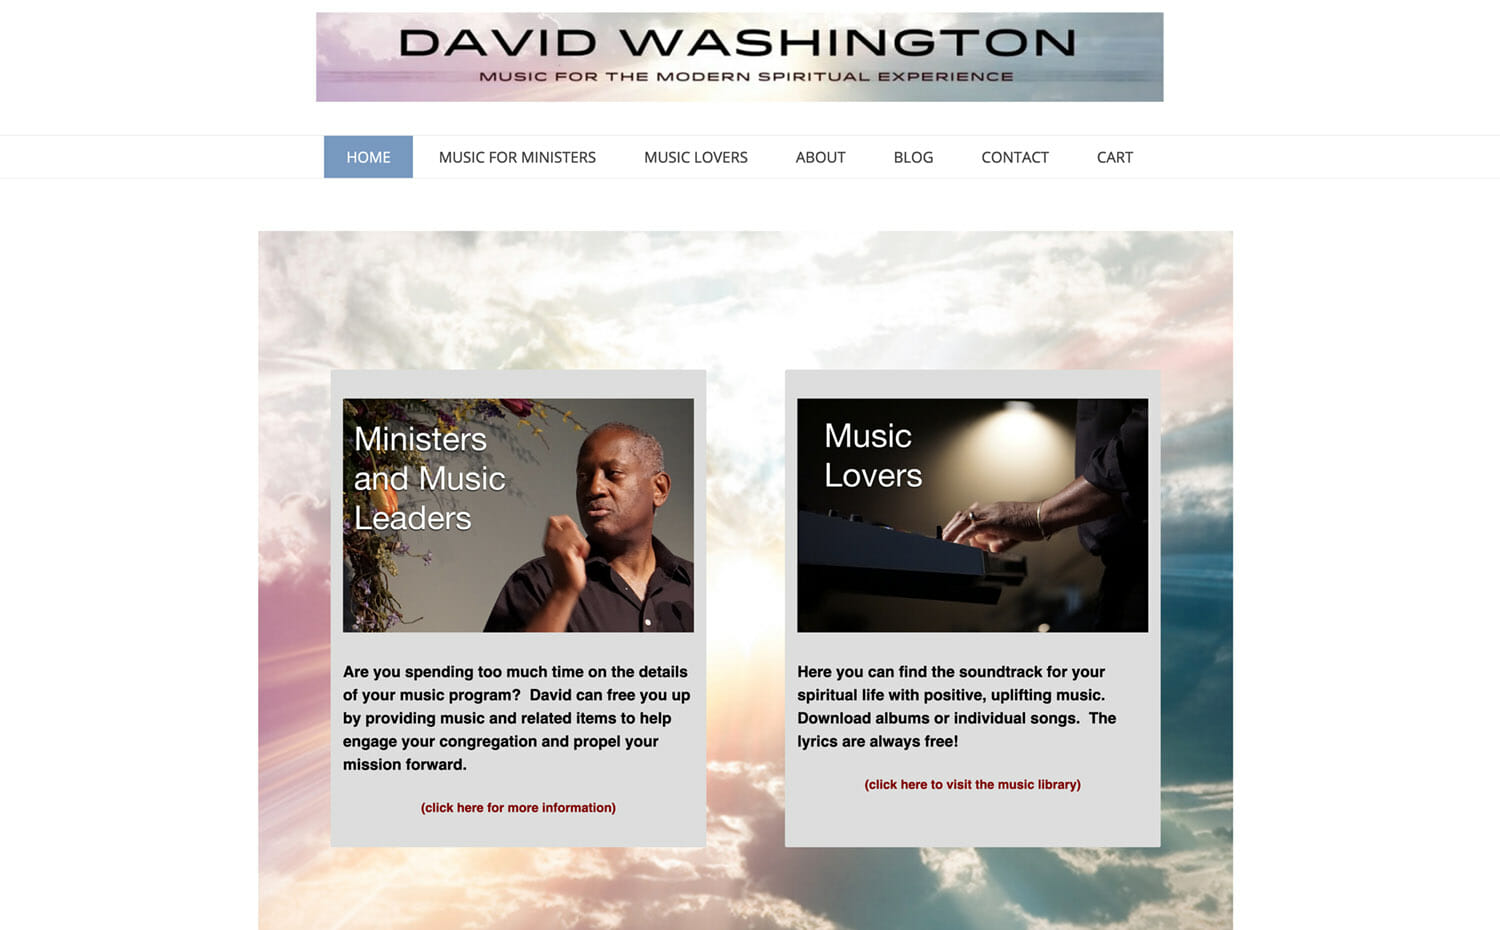 David Washington Music